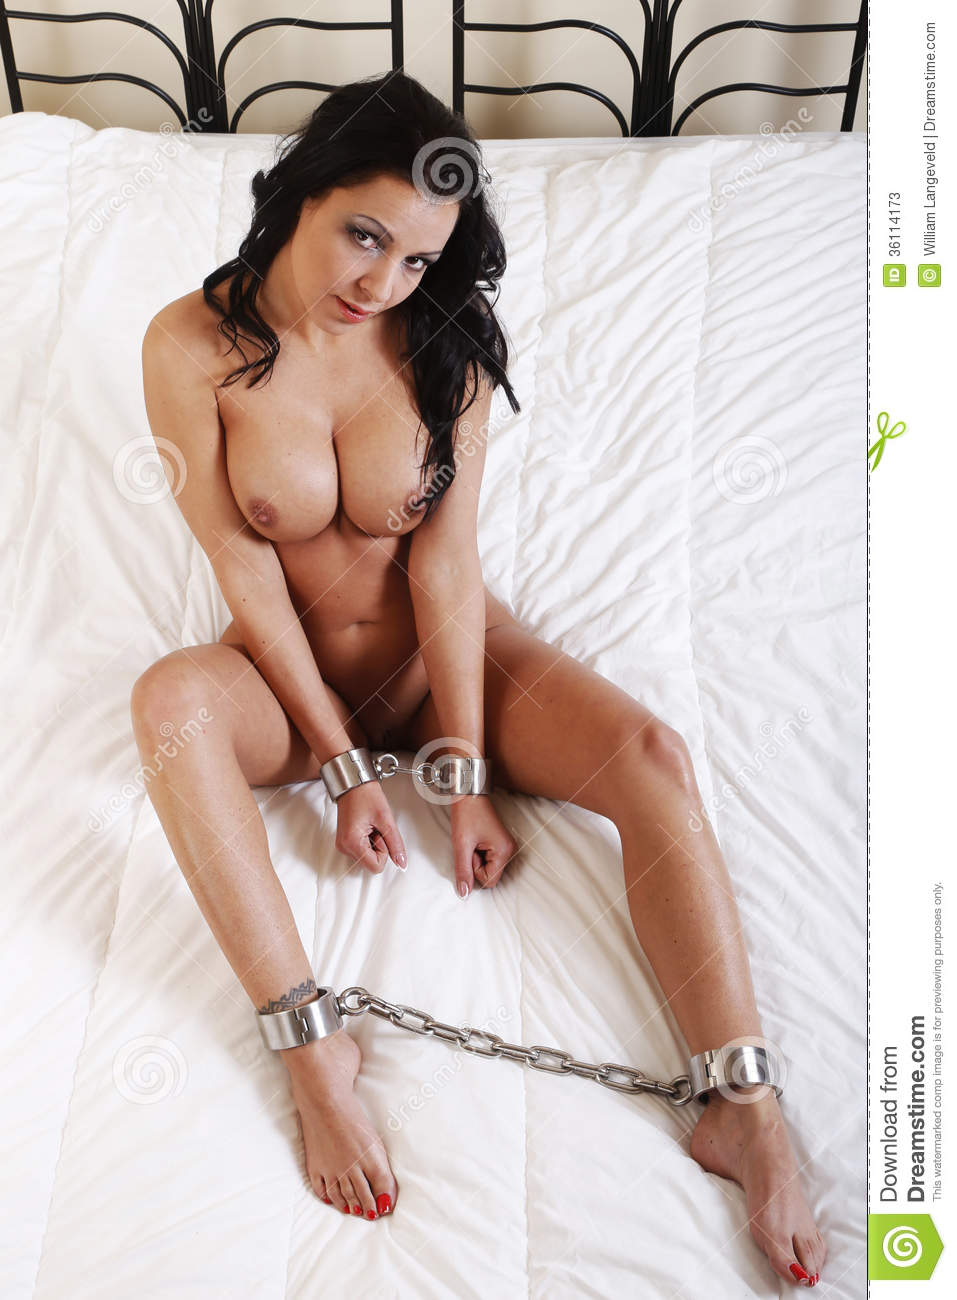 Beautful Nude Or Naked Woman Handcuffed Stock Image -2306